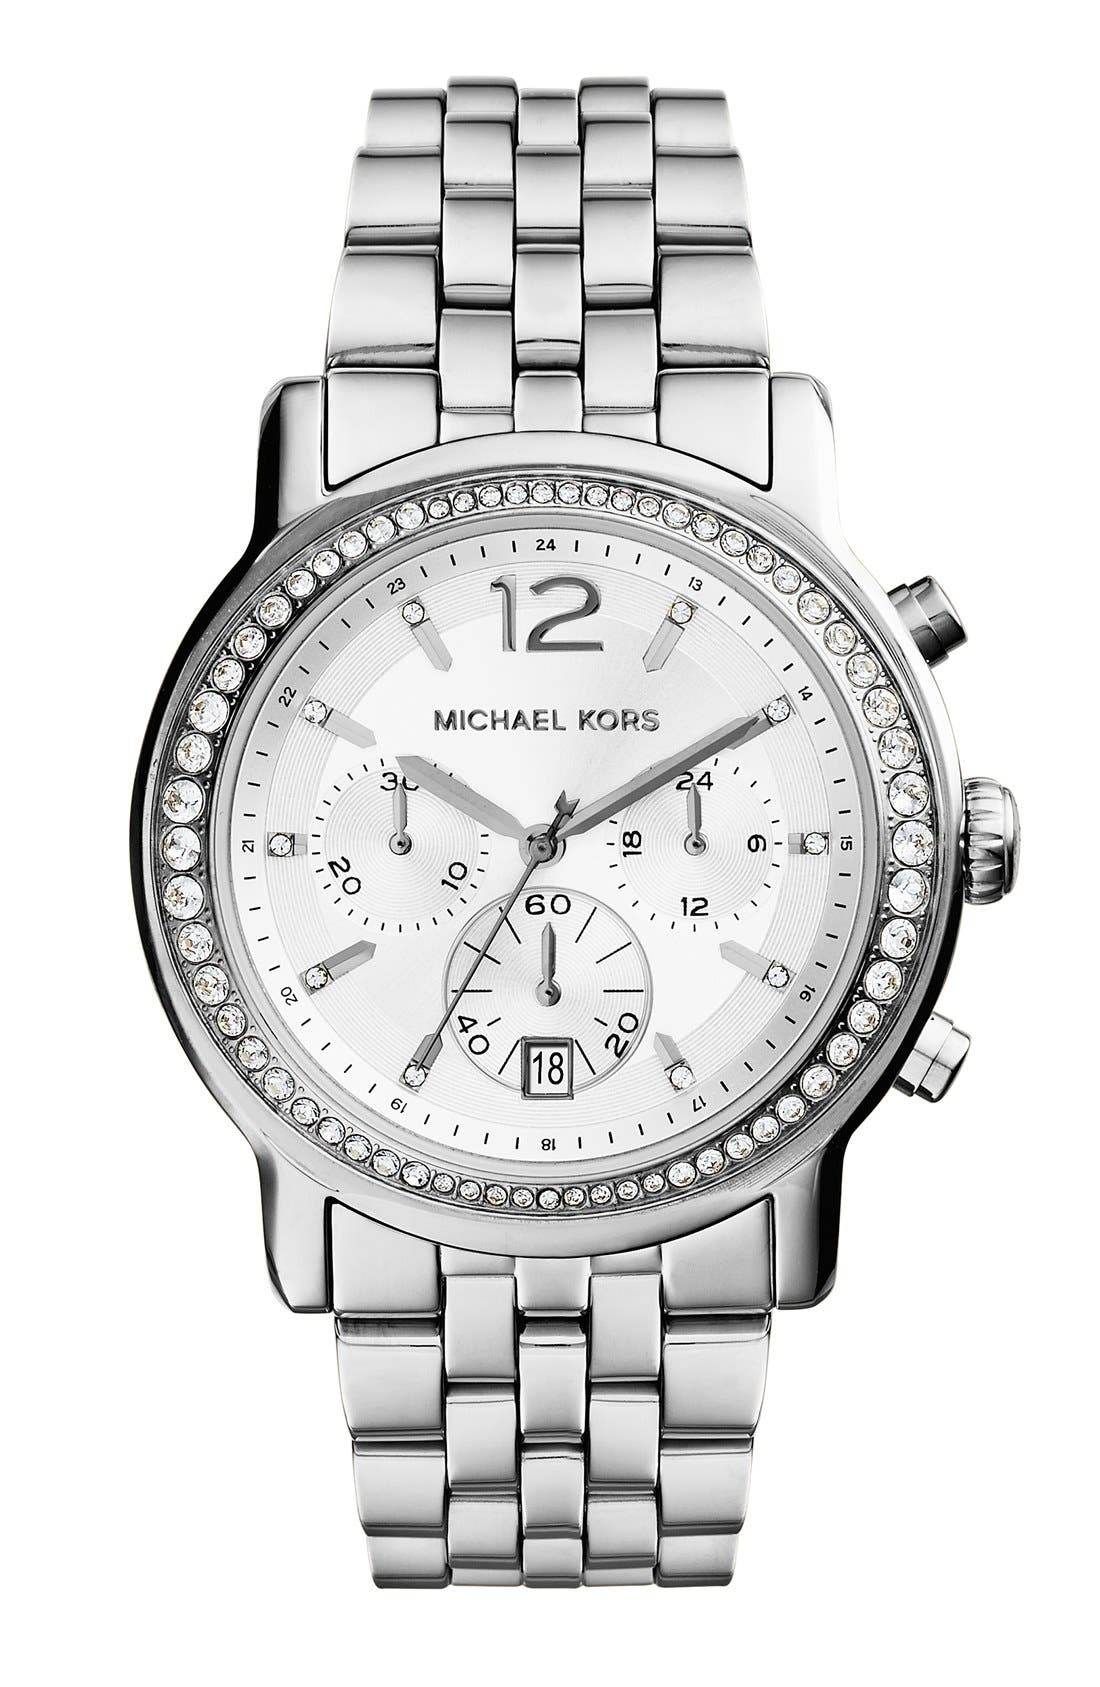 Main Image - Michael Kors 'Baisley' Crystal Bezel Chronograph Bracelet Watch, 41mm (Nordstrom Exclusive)